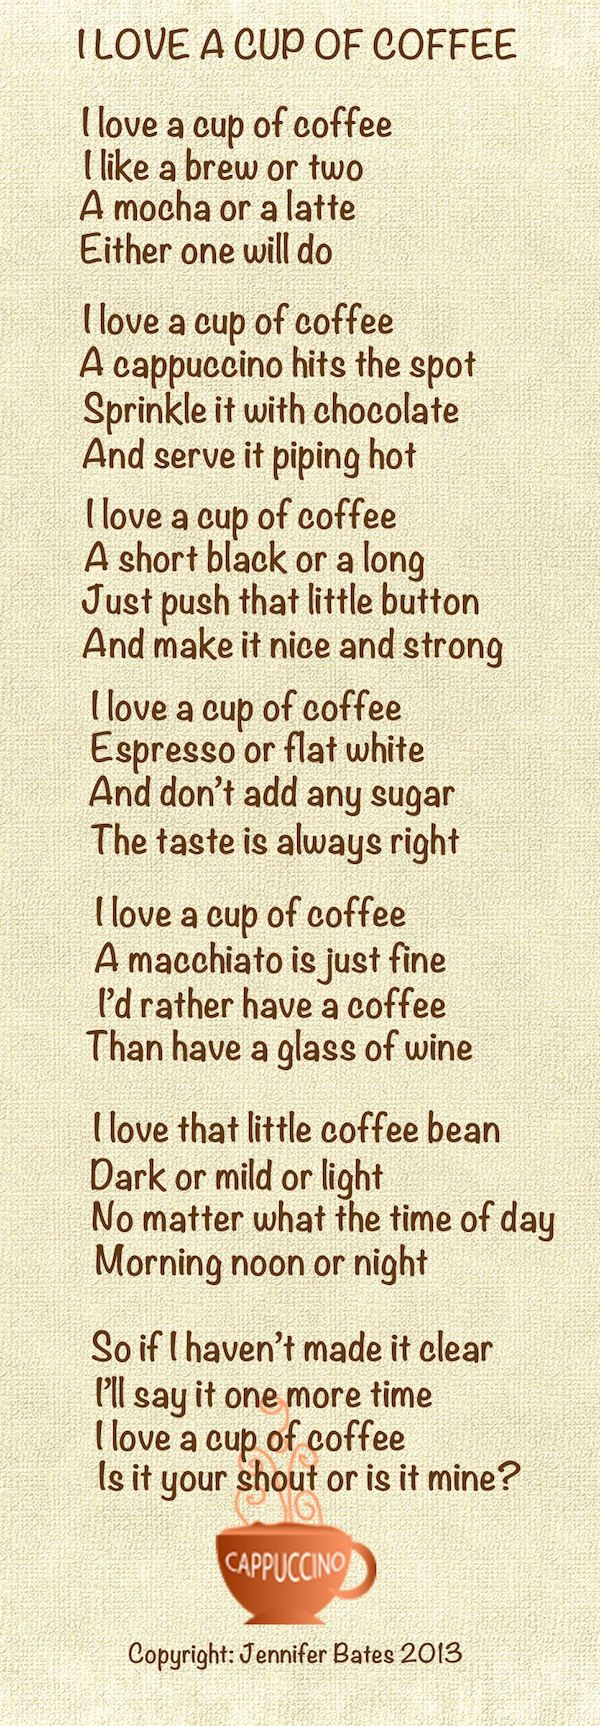 I love a cup of coffee ....♥